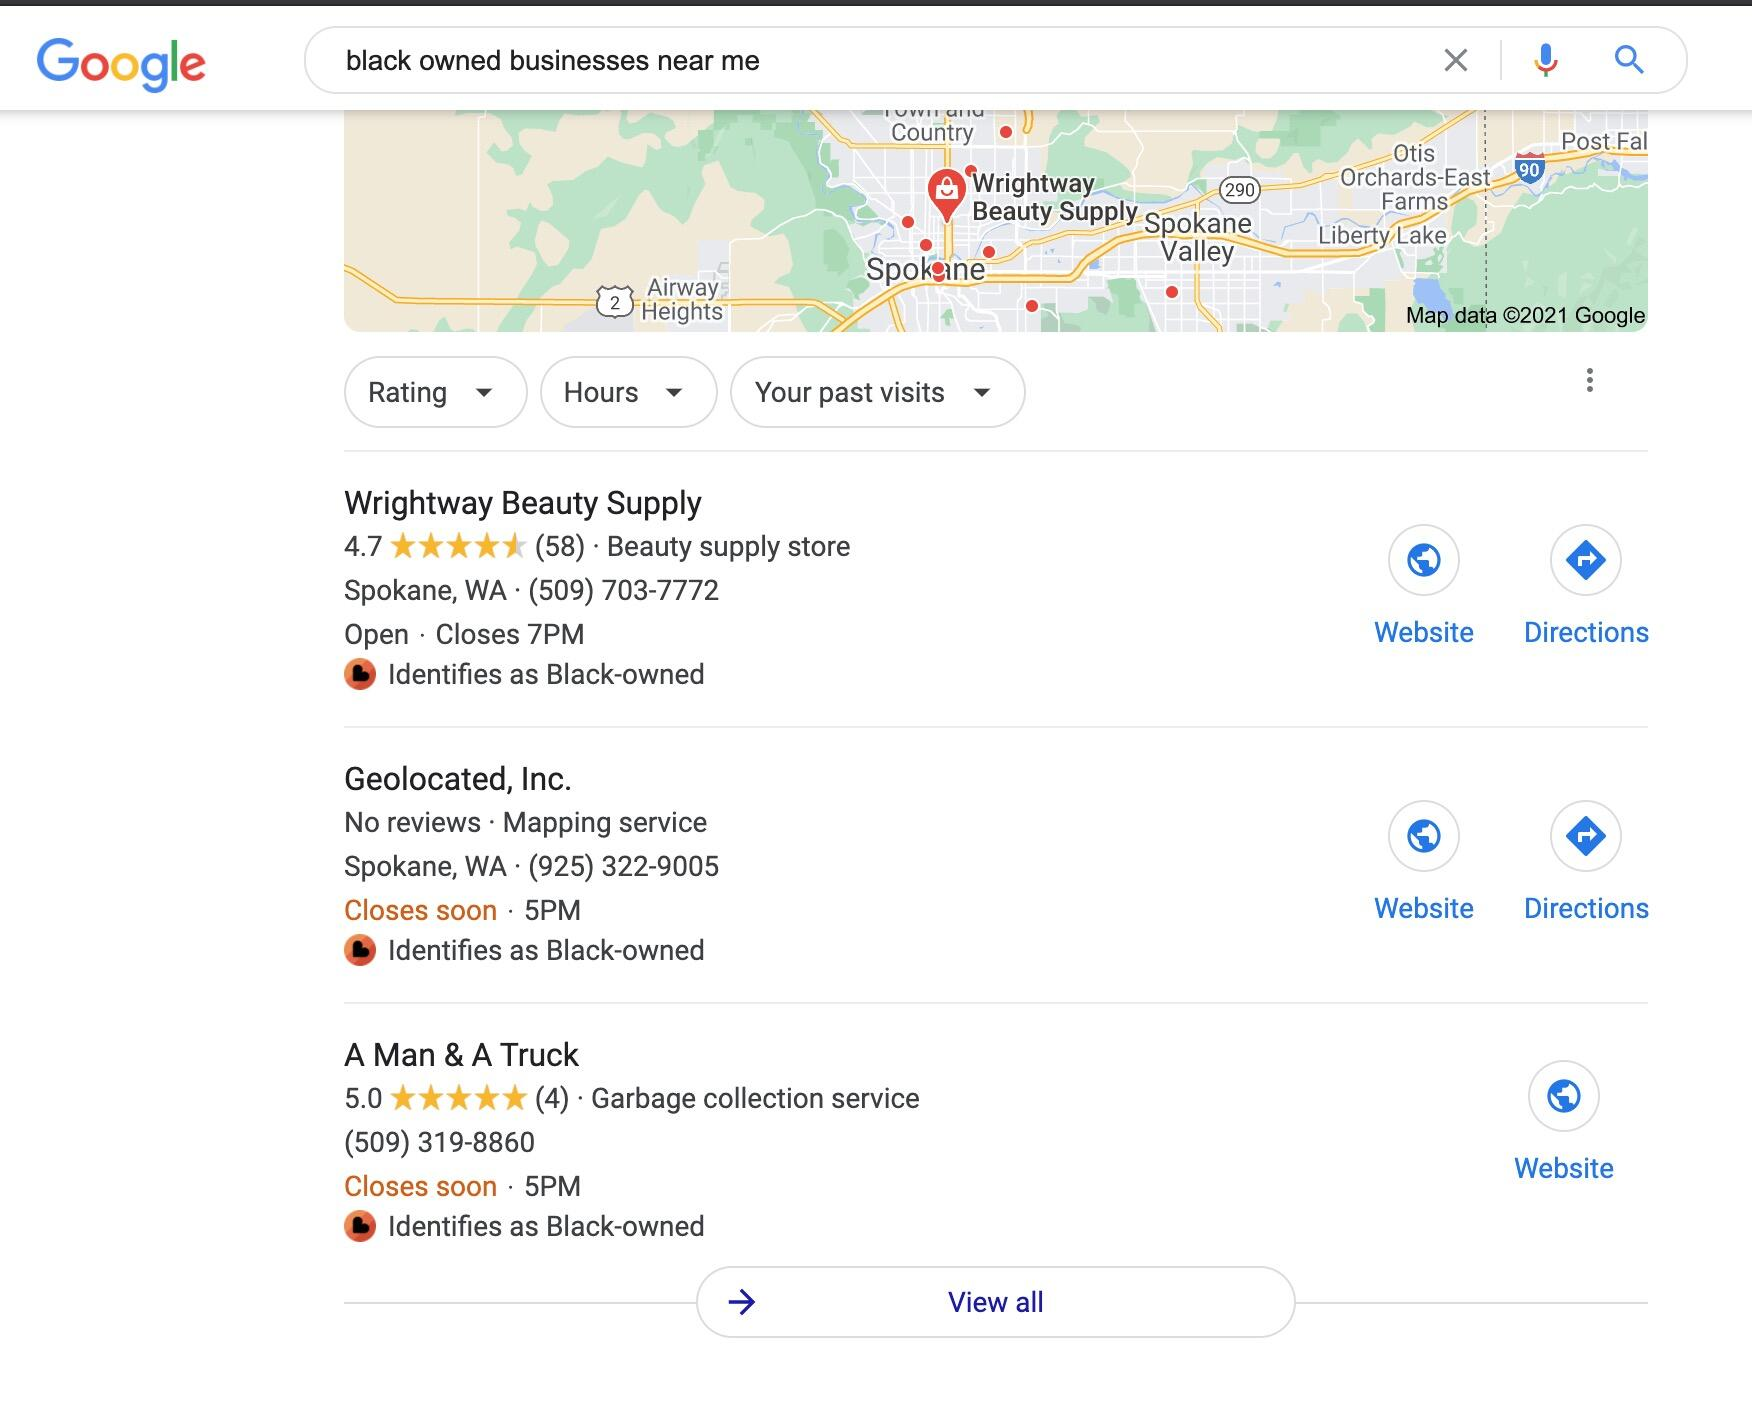 Black owned businesses near me google results